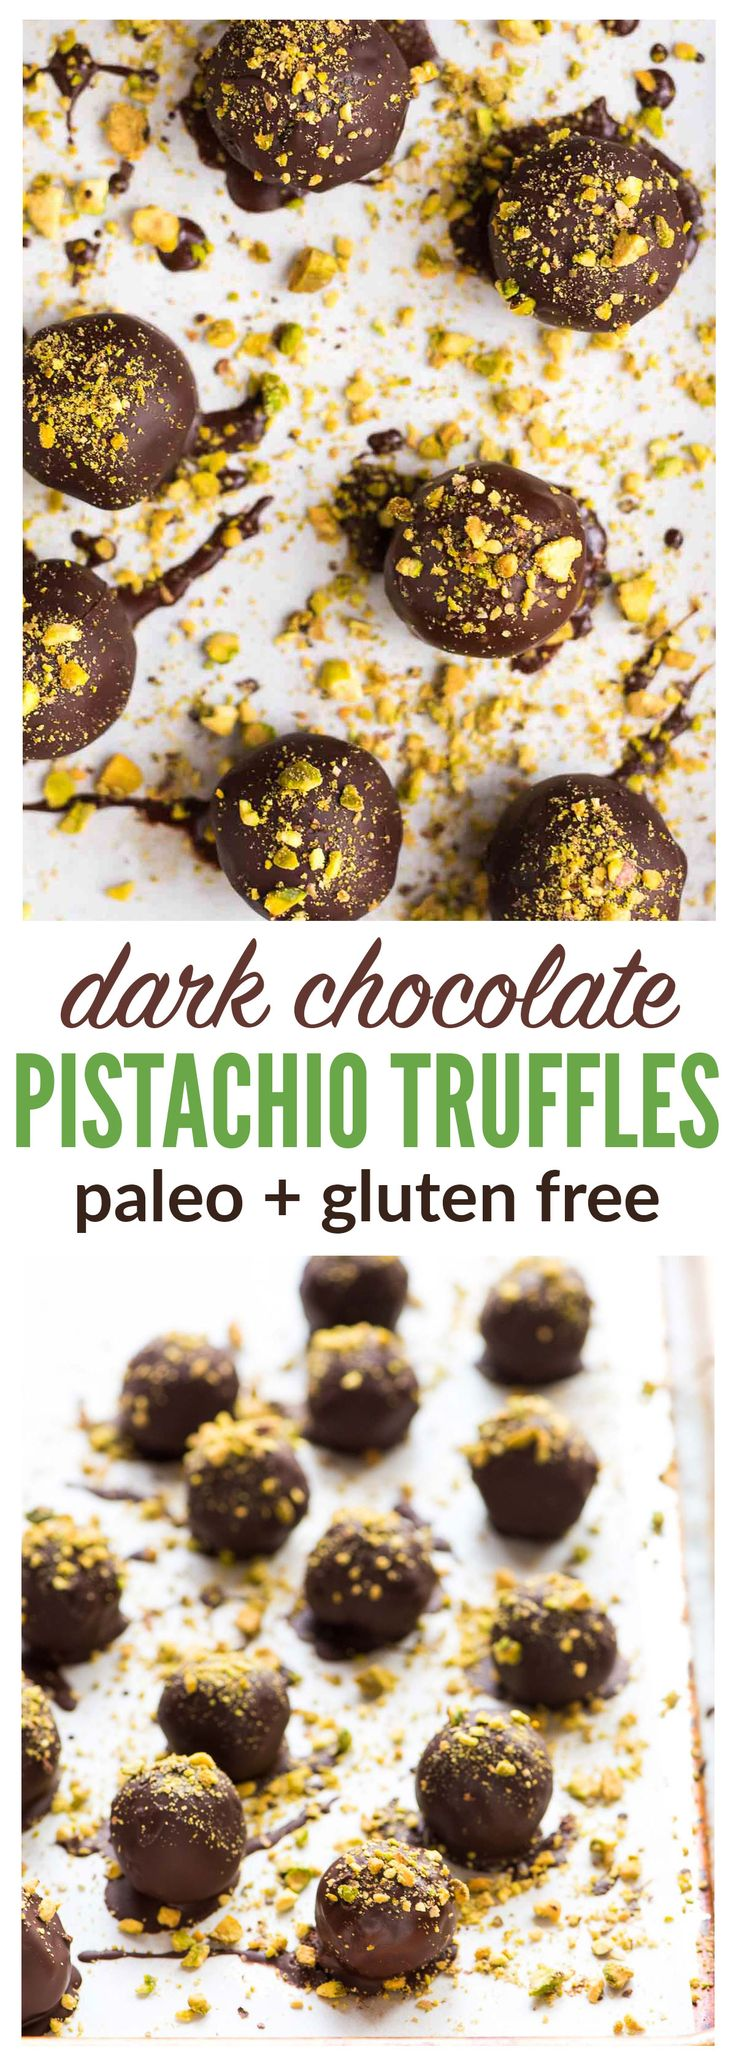 Dark Chocolate Paleo Pistachio Truffles. A healthy raw vegan dessert that everyone can enjoy! This no bake dessert is perfect for homemade Christmas gifts, cookie plates, or anytime you want a treat at the holidays! {gluten free, clean eating, and dairy free} Recipe at wellplated.com | @wellplated